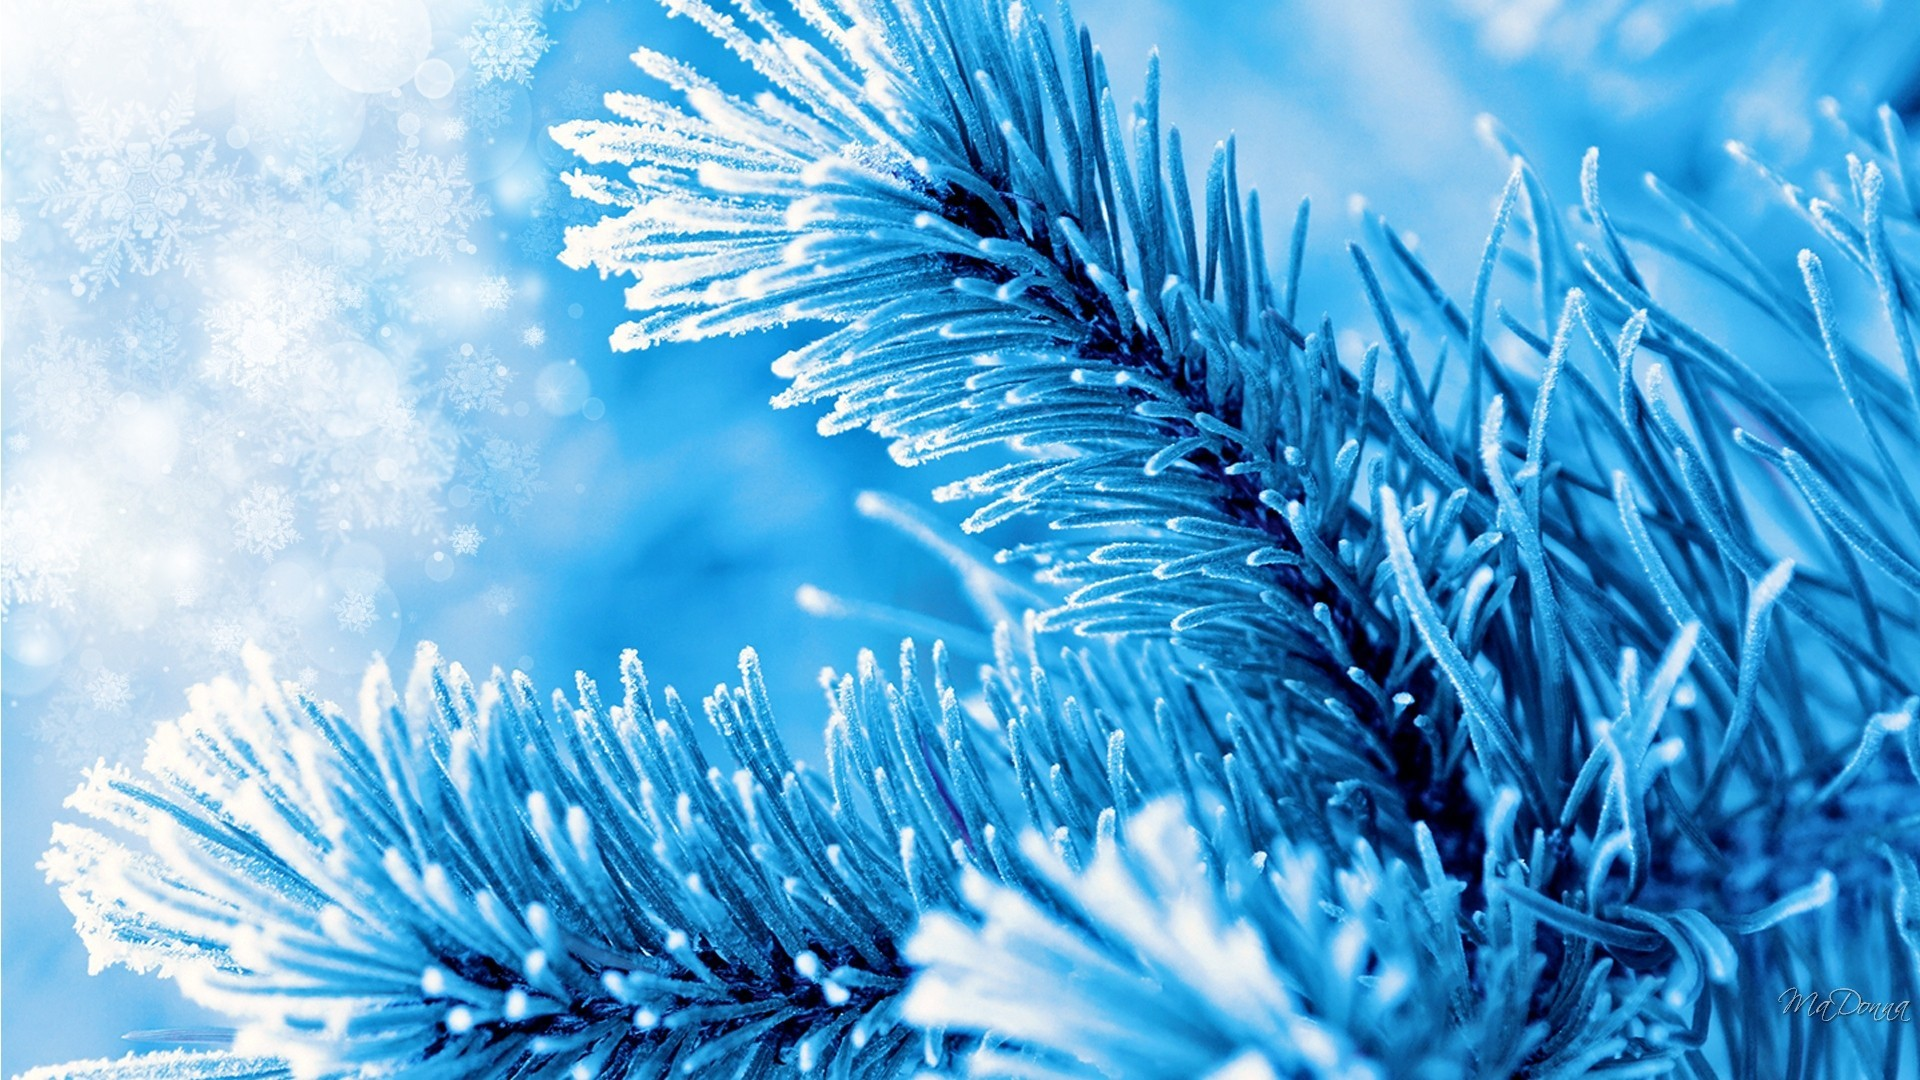 Blue Spruce Christmas Trees